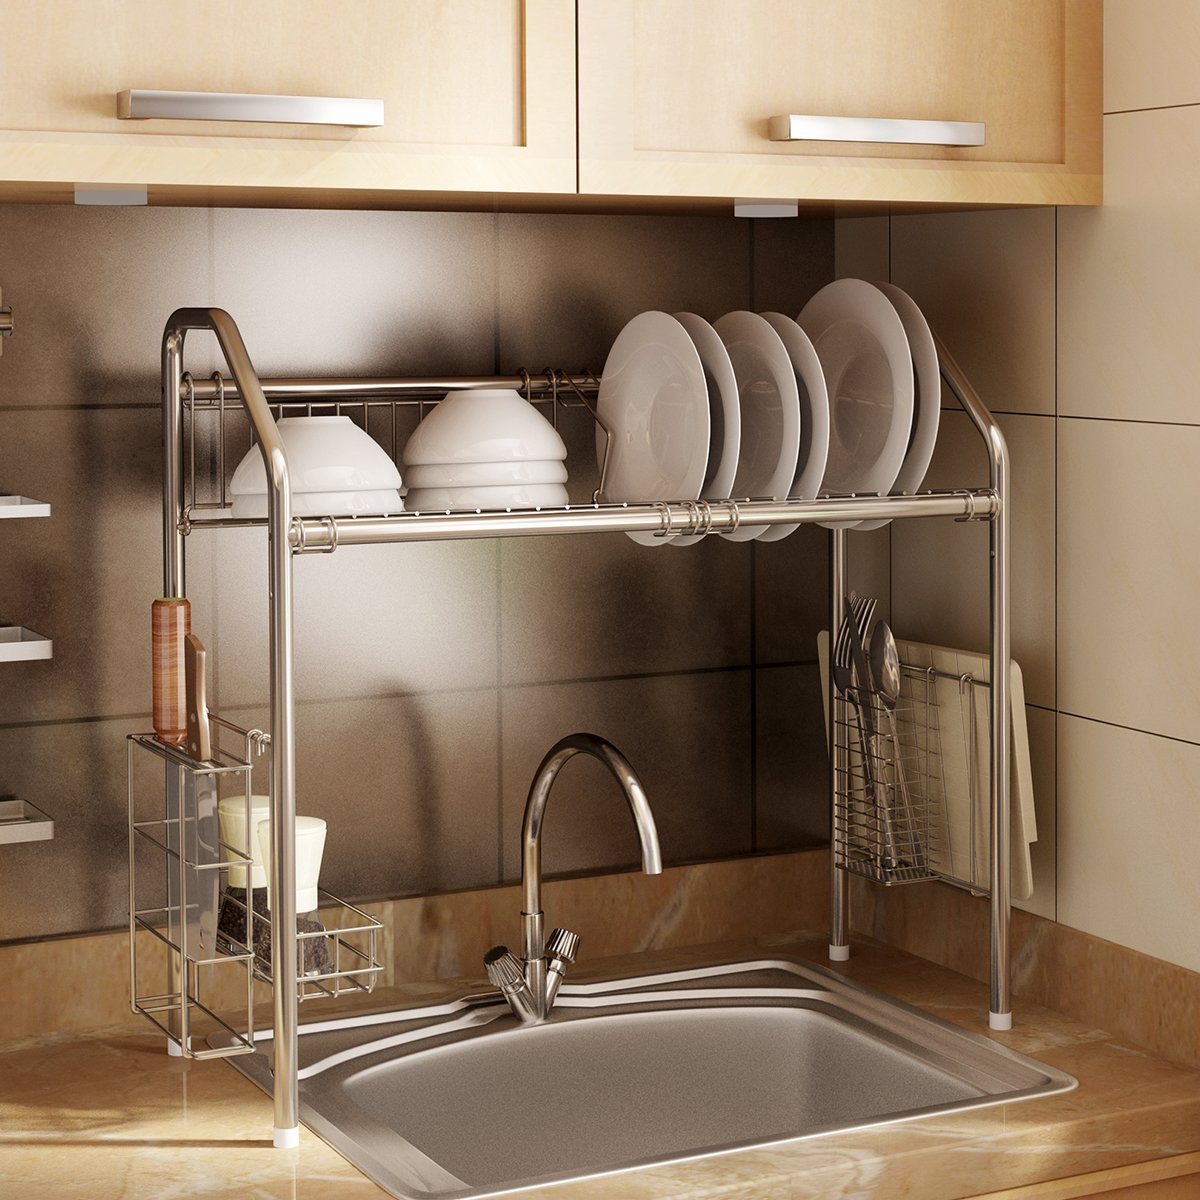 33a2949fcc9b Amazon.com: CreaTwo Single Tier Stainless Steel Dish Rack Adjustable Dish  Drainer Over Sink Kitchen Storage Shelf for Single Groove Silver: Kitchen &  Dining